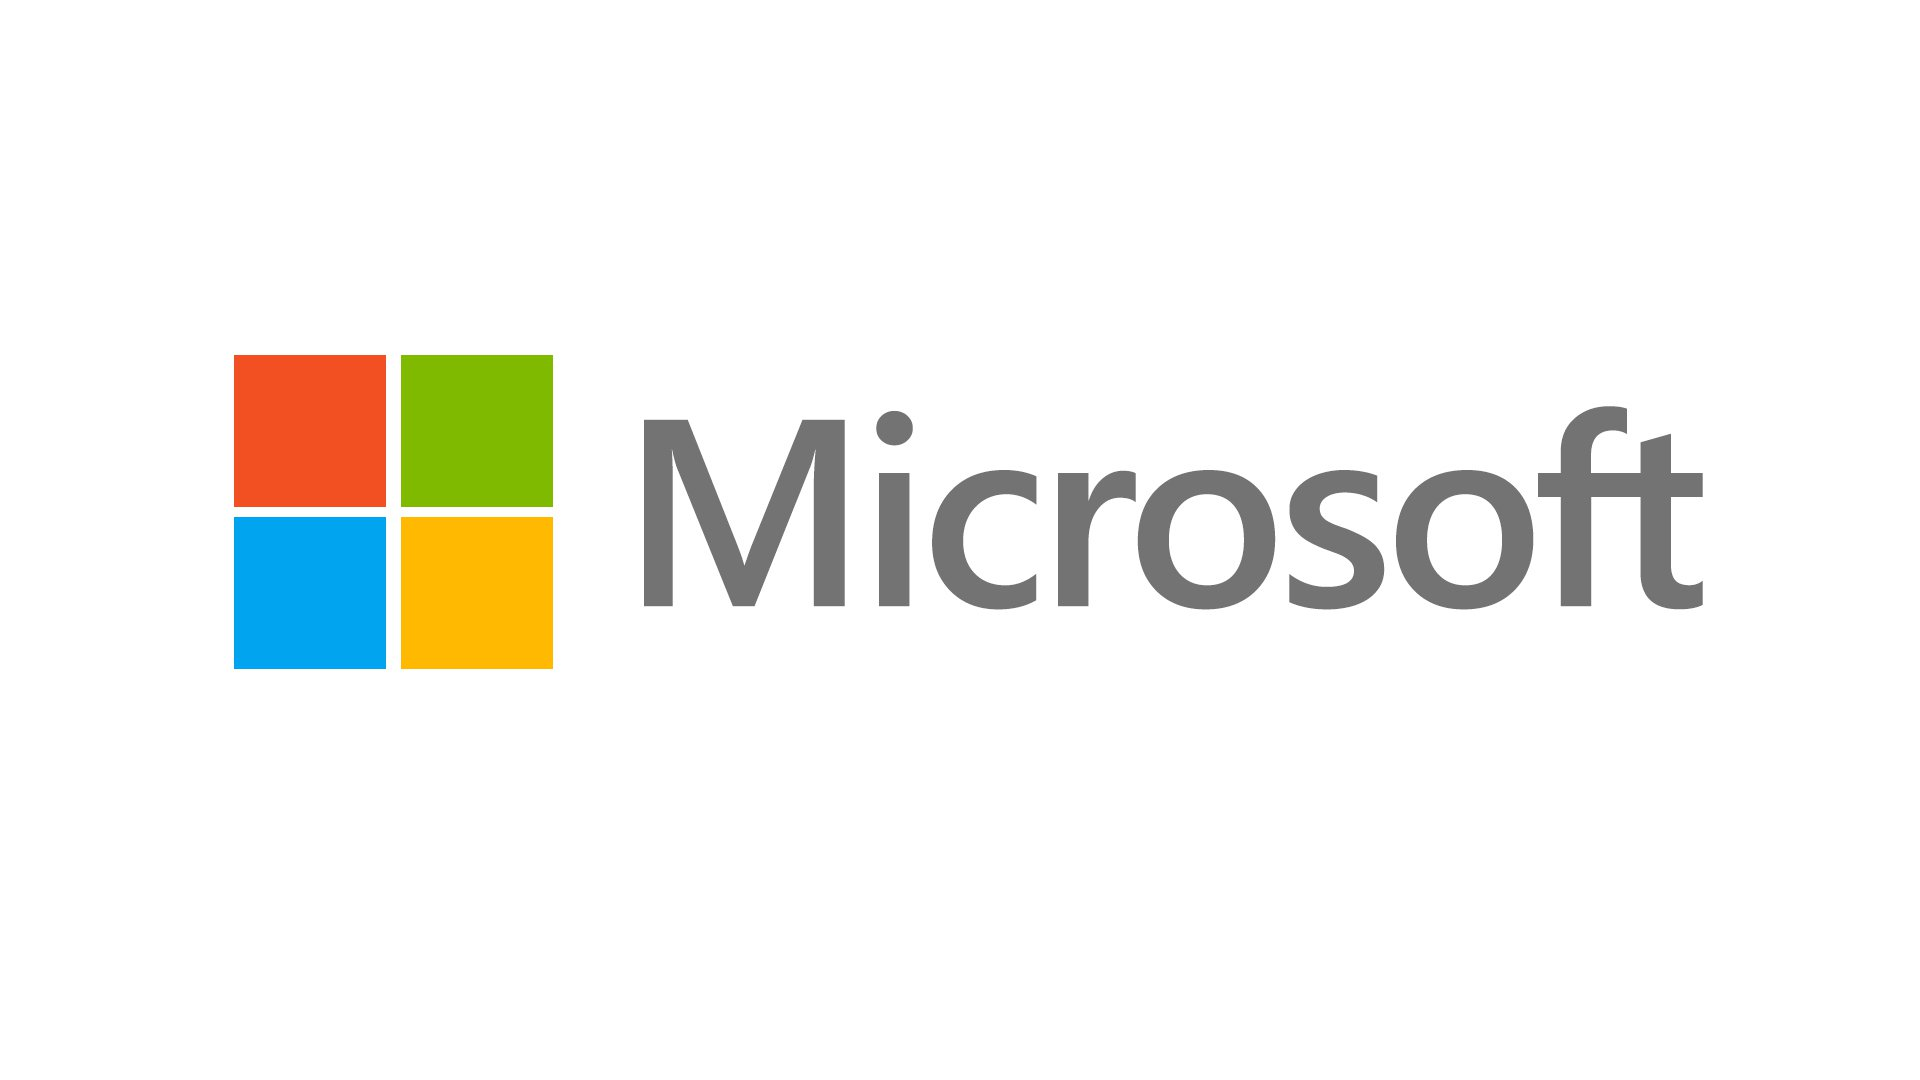 Microsoft Cracks an Exclusive Deal Seizing the top Gaming Titles at 7.5 Billion USD